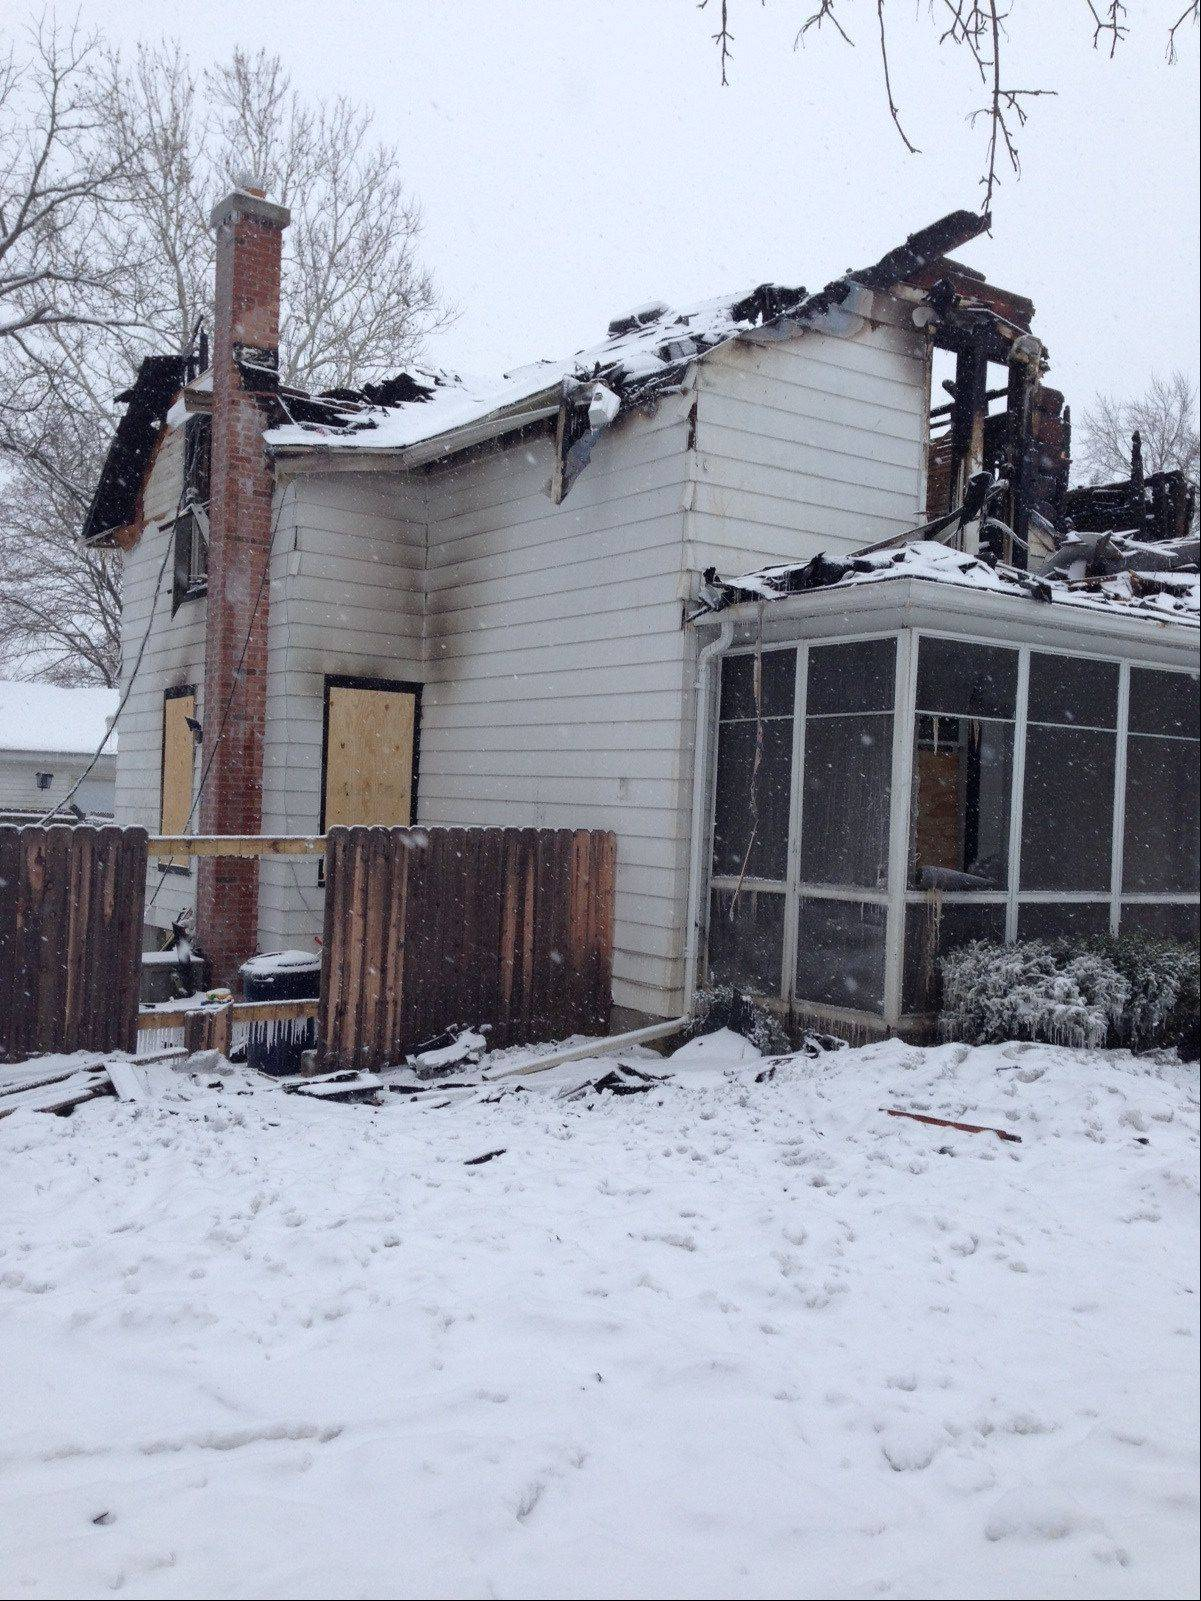 The family of five lived in this Carpentersville house on the 100 block of North Washington Street. They returned from vacation Thursday to find that a fire had destroyed it and everything inside. The family is temporarily living with relatives in Carpentersville.